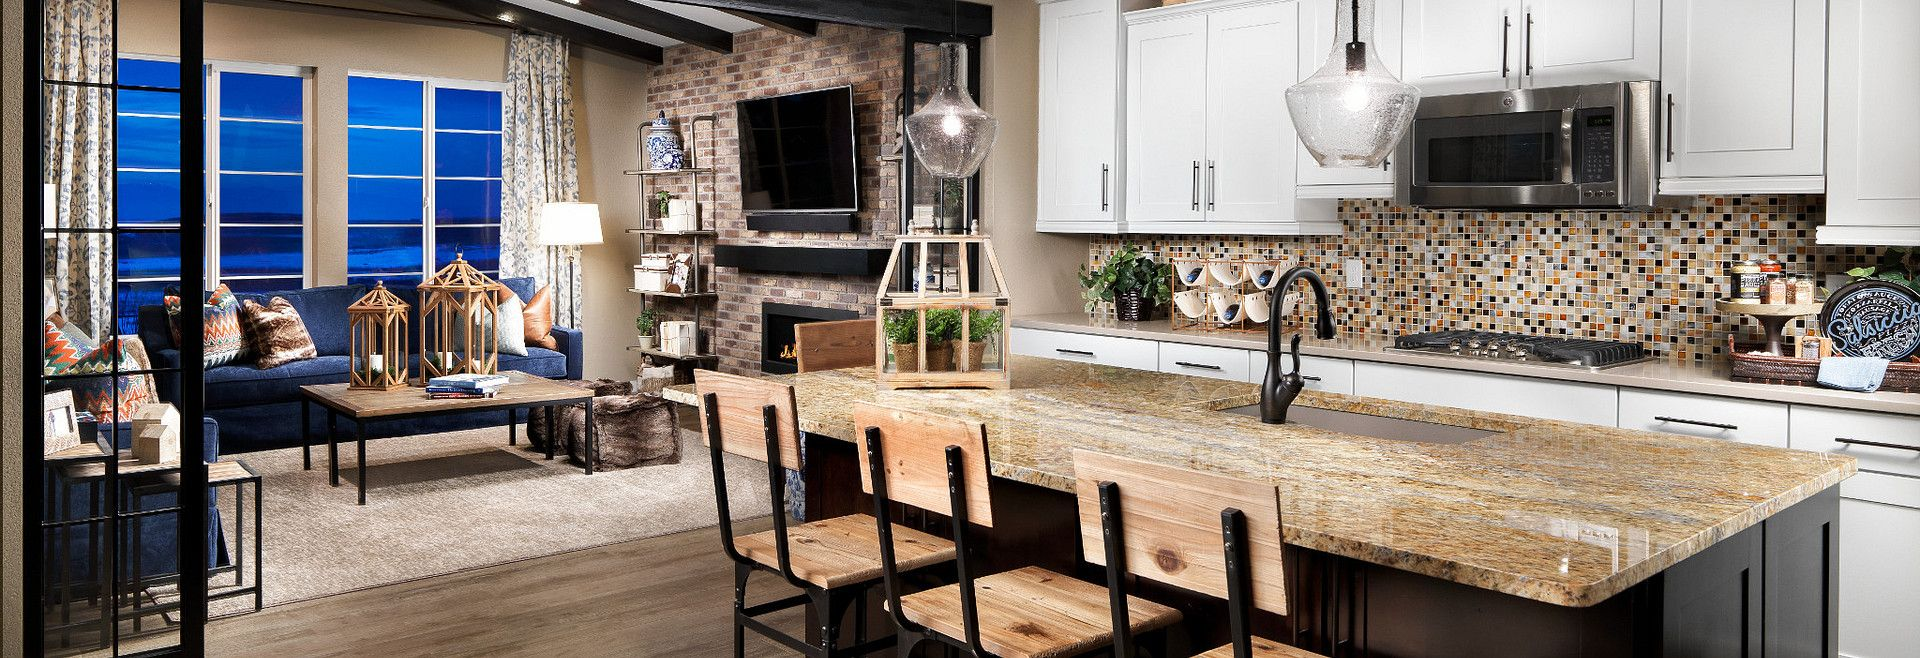 Kitchen featured in the 5204  Torrey Pine By Shea Homes in Denver, CO